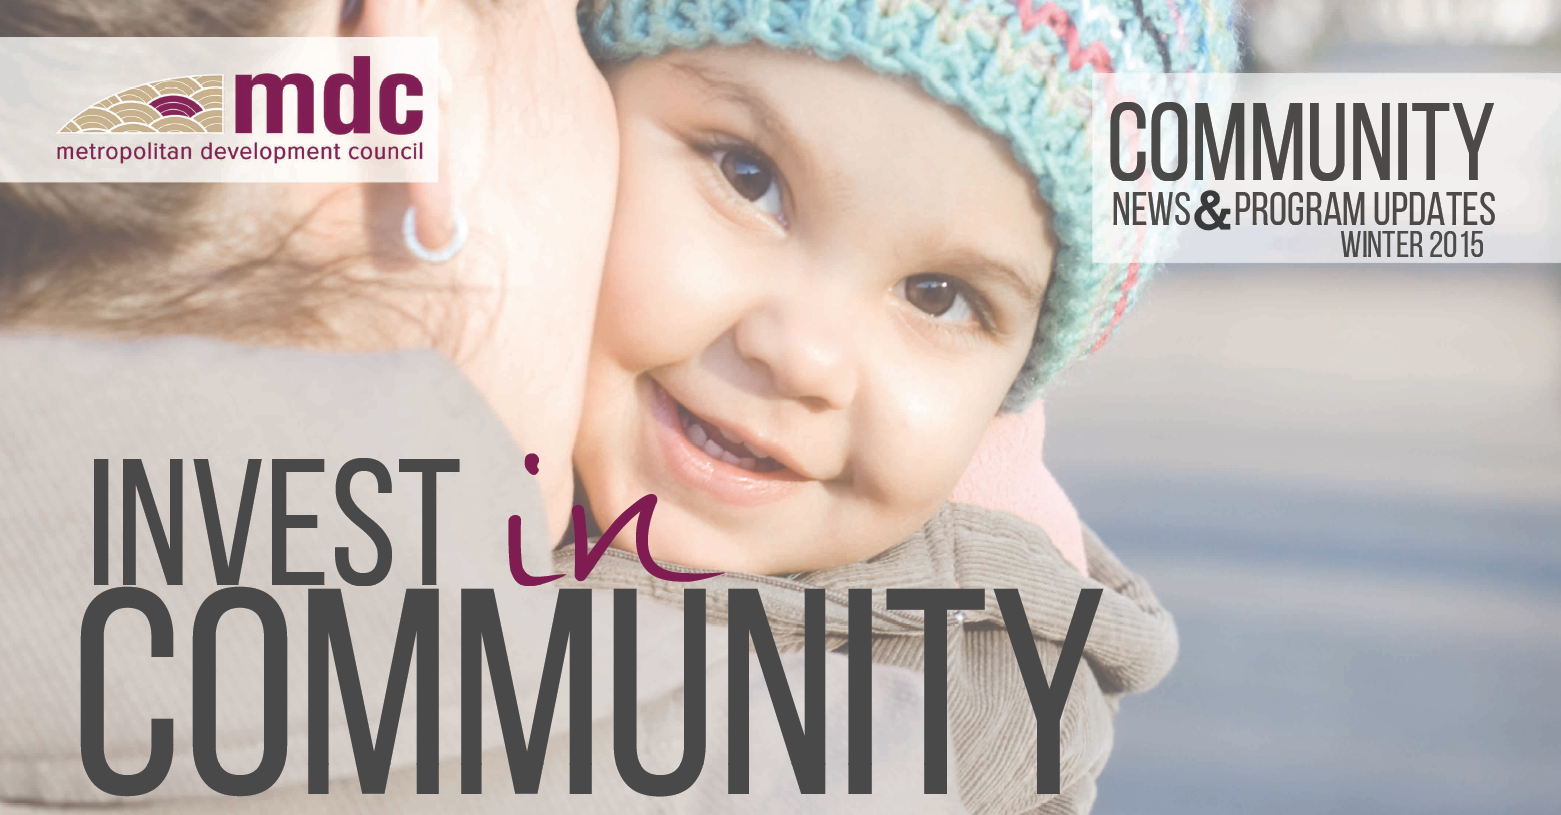 MDC Community News For Winter 2015